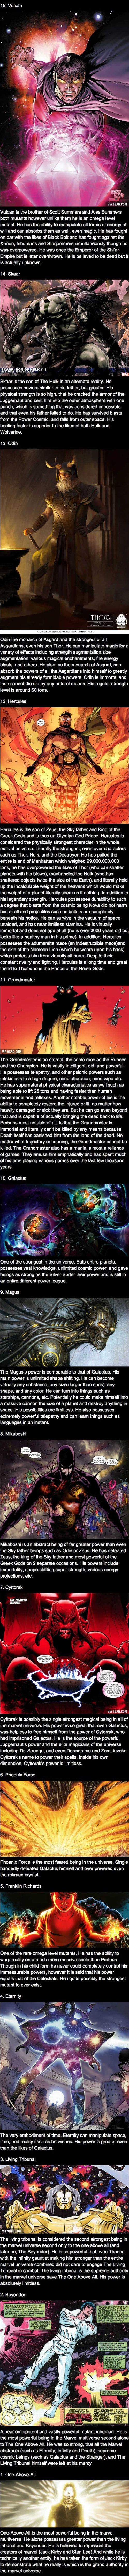 THE most powerful beings in the Marvel Universe